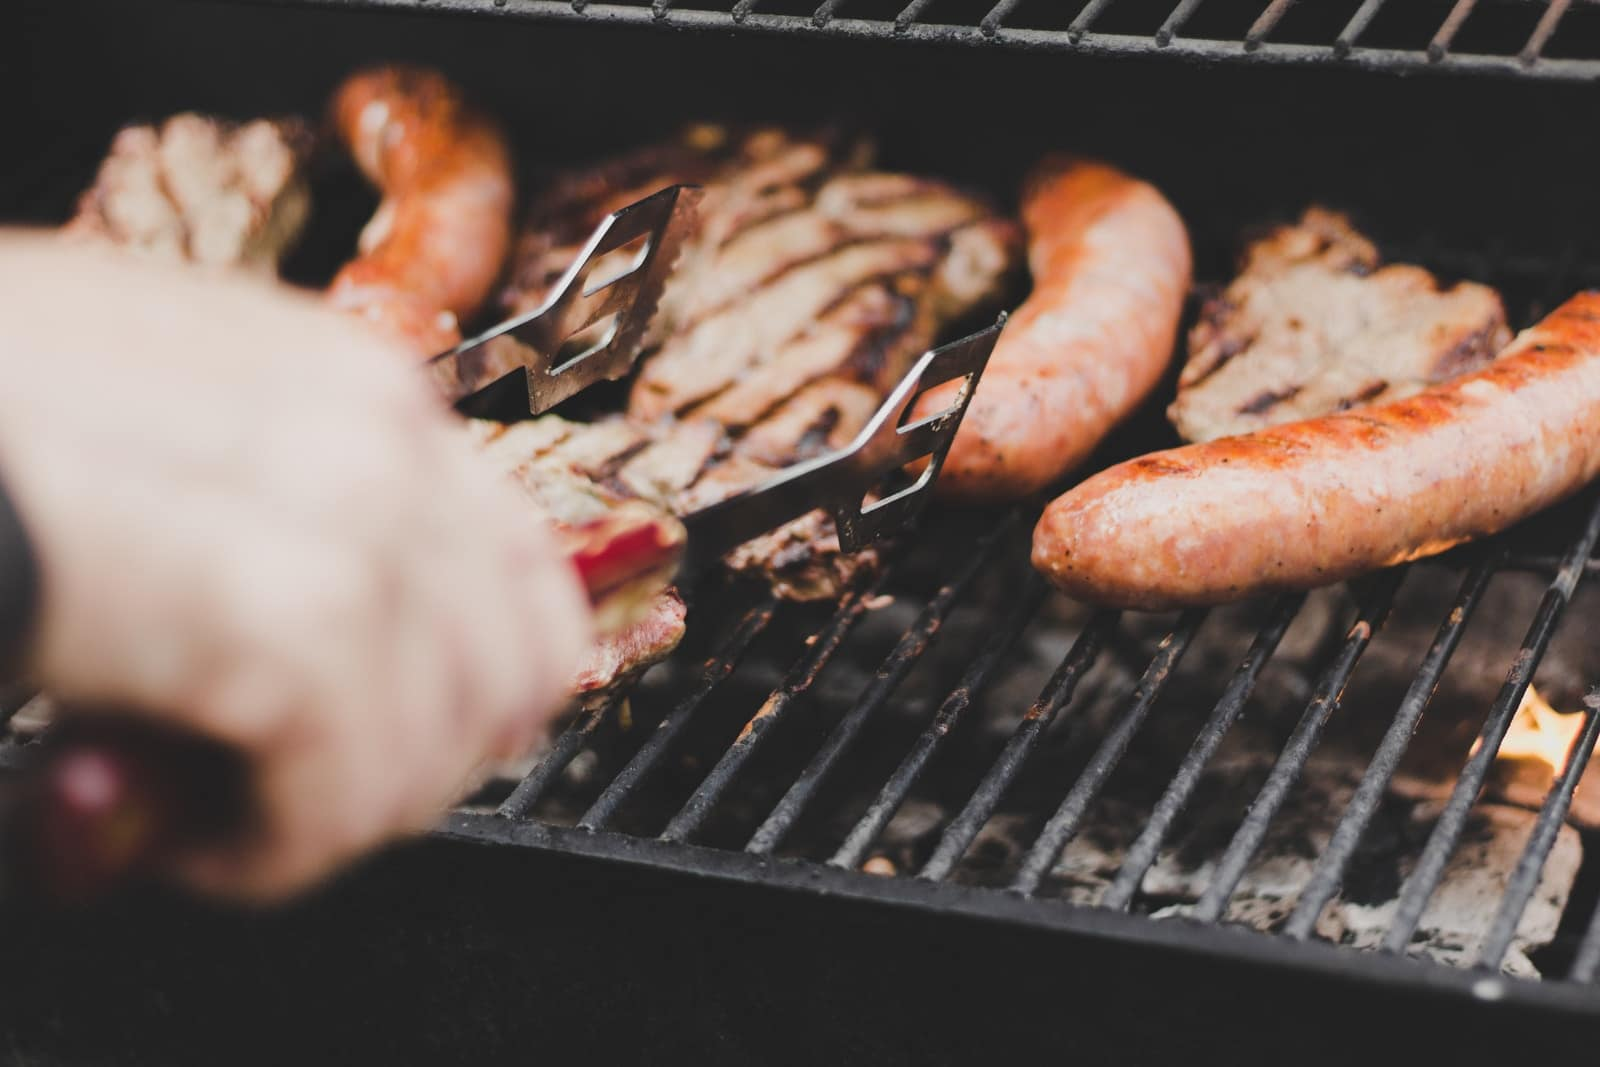 person grilling sausage and meat